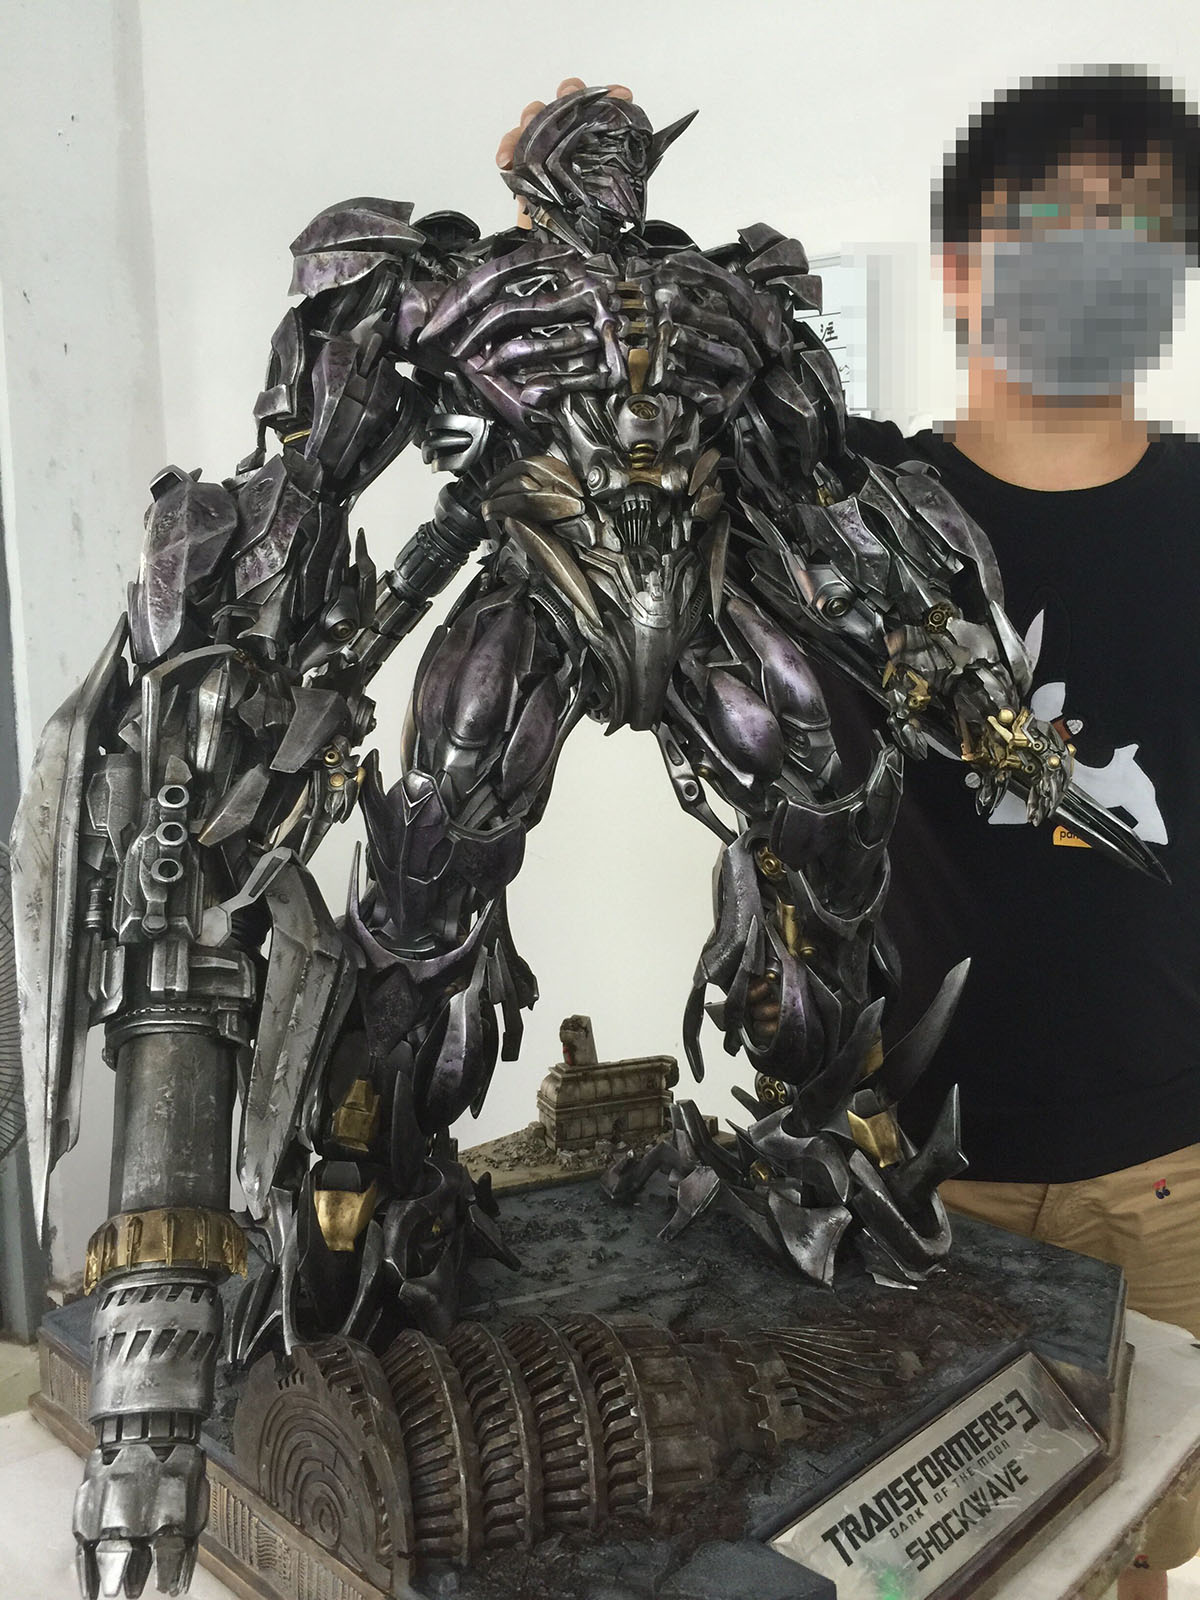 Statues des Films Transformers (articulé, non transformable) ― Par Prime1Studio, M3 Studio, Concept Zone, Super Fans Group, Soap Studio, Soldier Story Toys, etc - Page 3 308499743